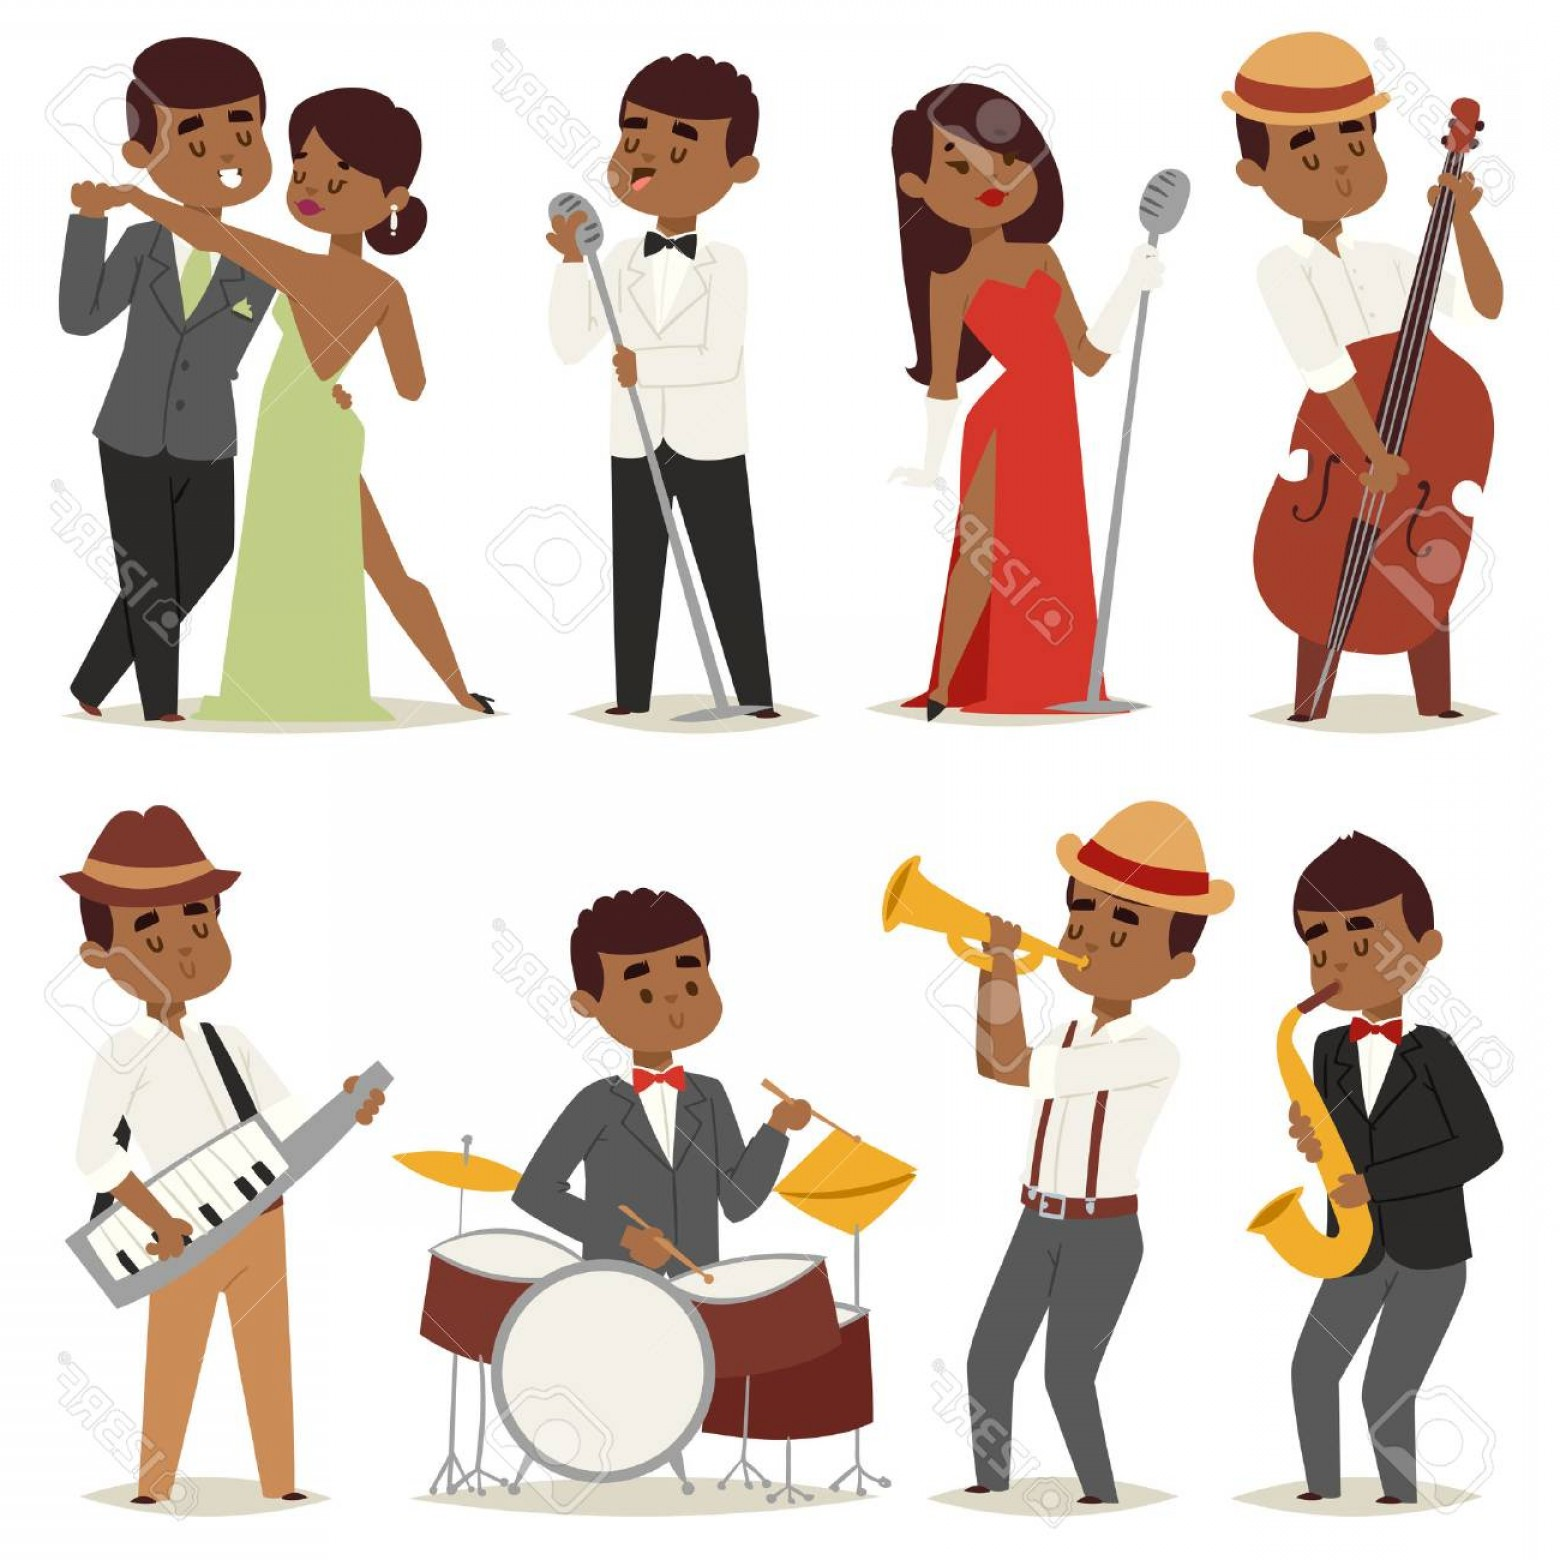 Musician Person Vector: Photostock Vector Jazz Music Band Flat Group Cartoon Musician People Playing On Instruments Blues Vector Illustration